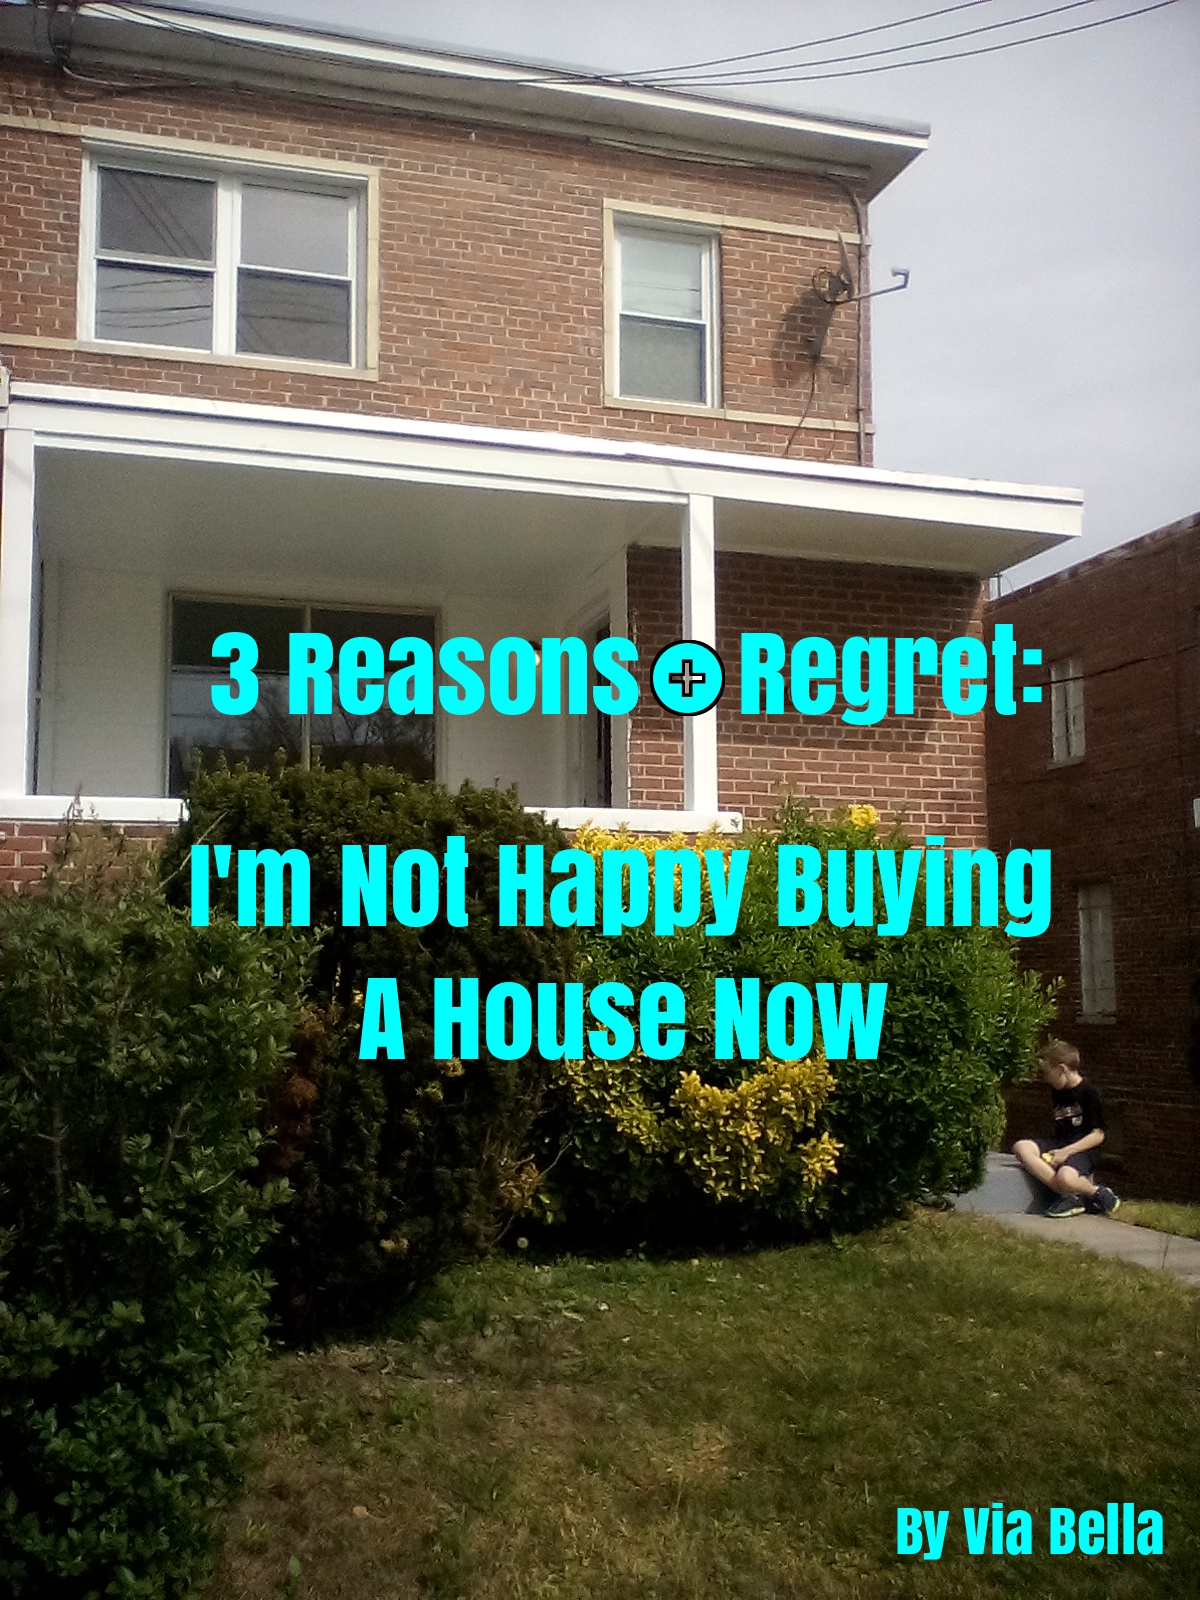 Via Bella 3 Reasons Regret Im Not Happy Buying A House Now